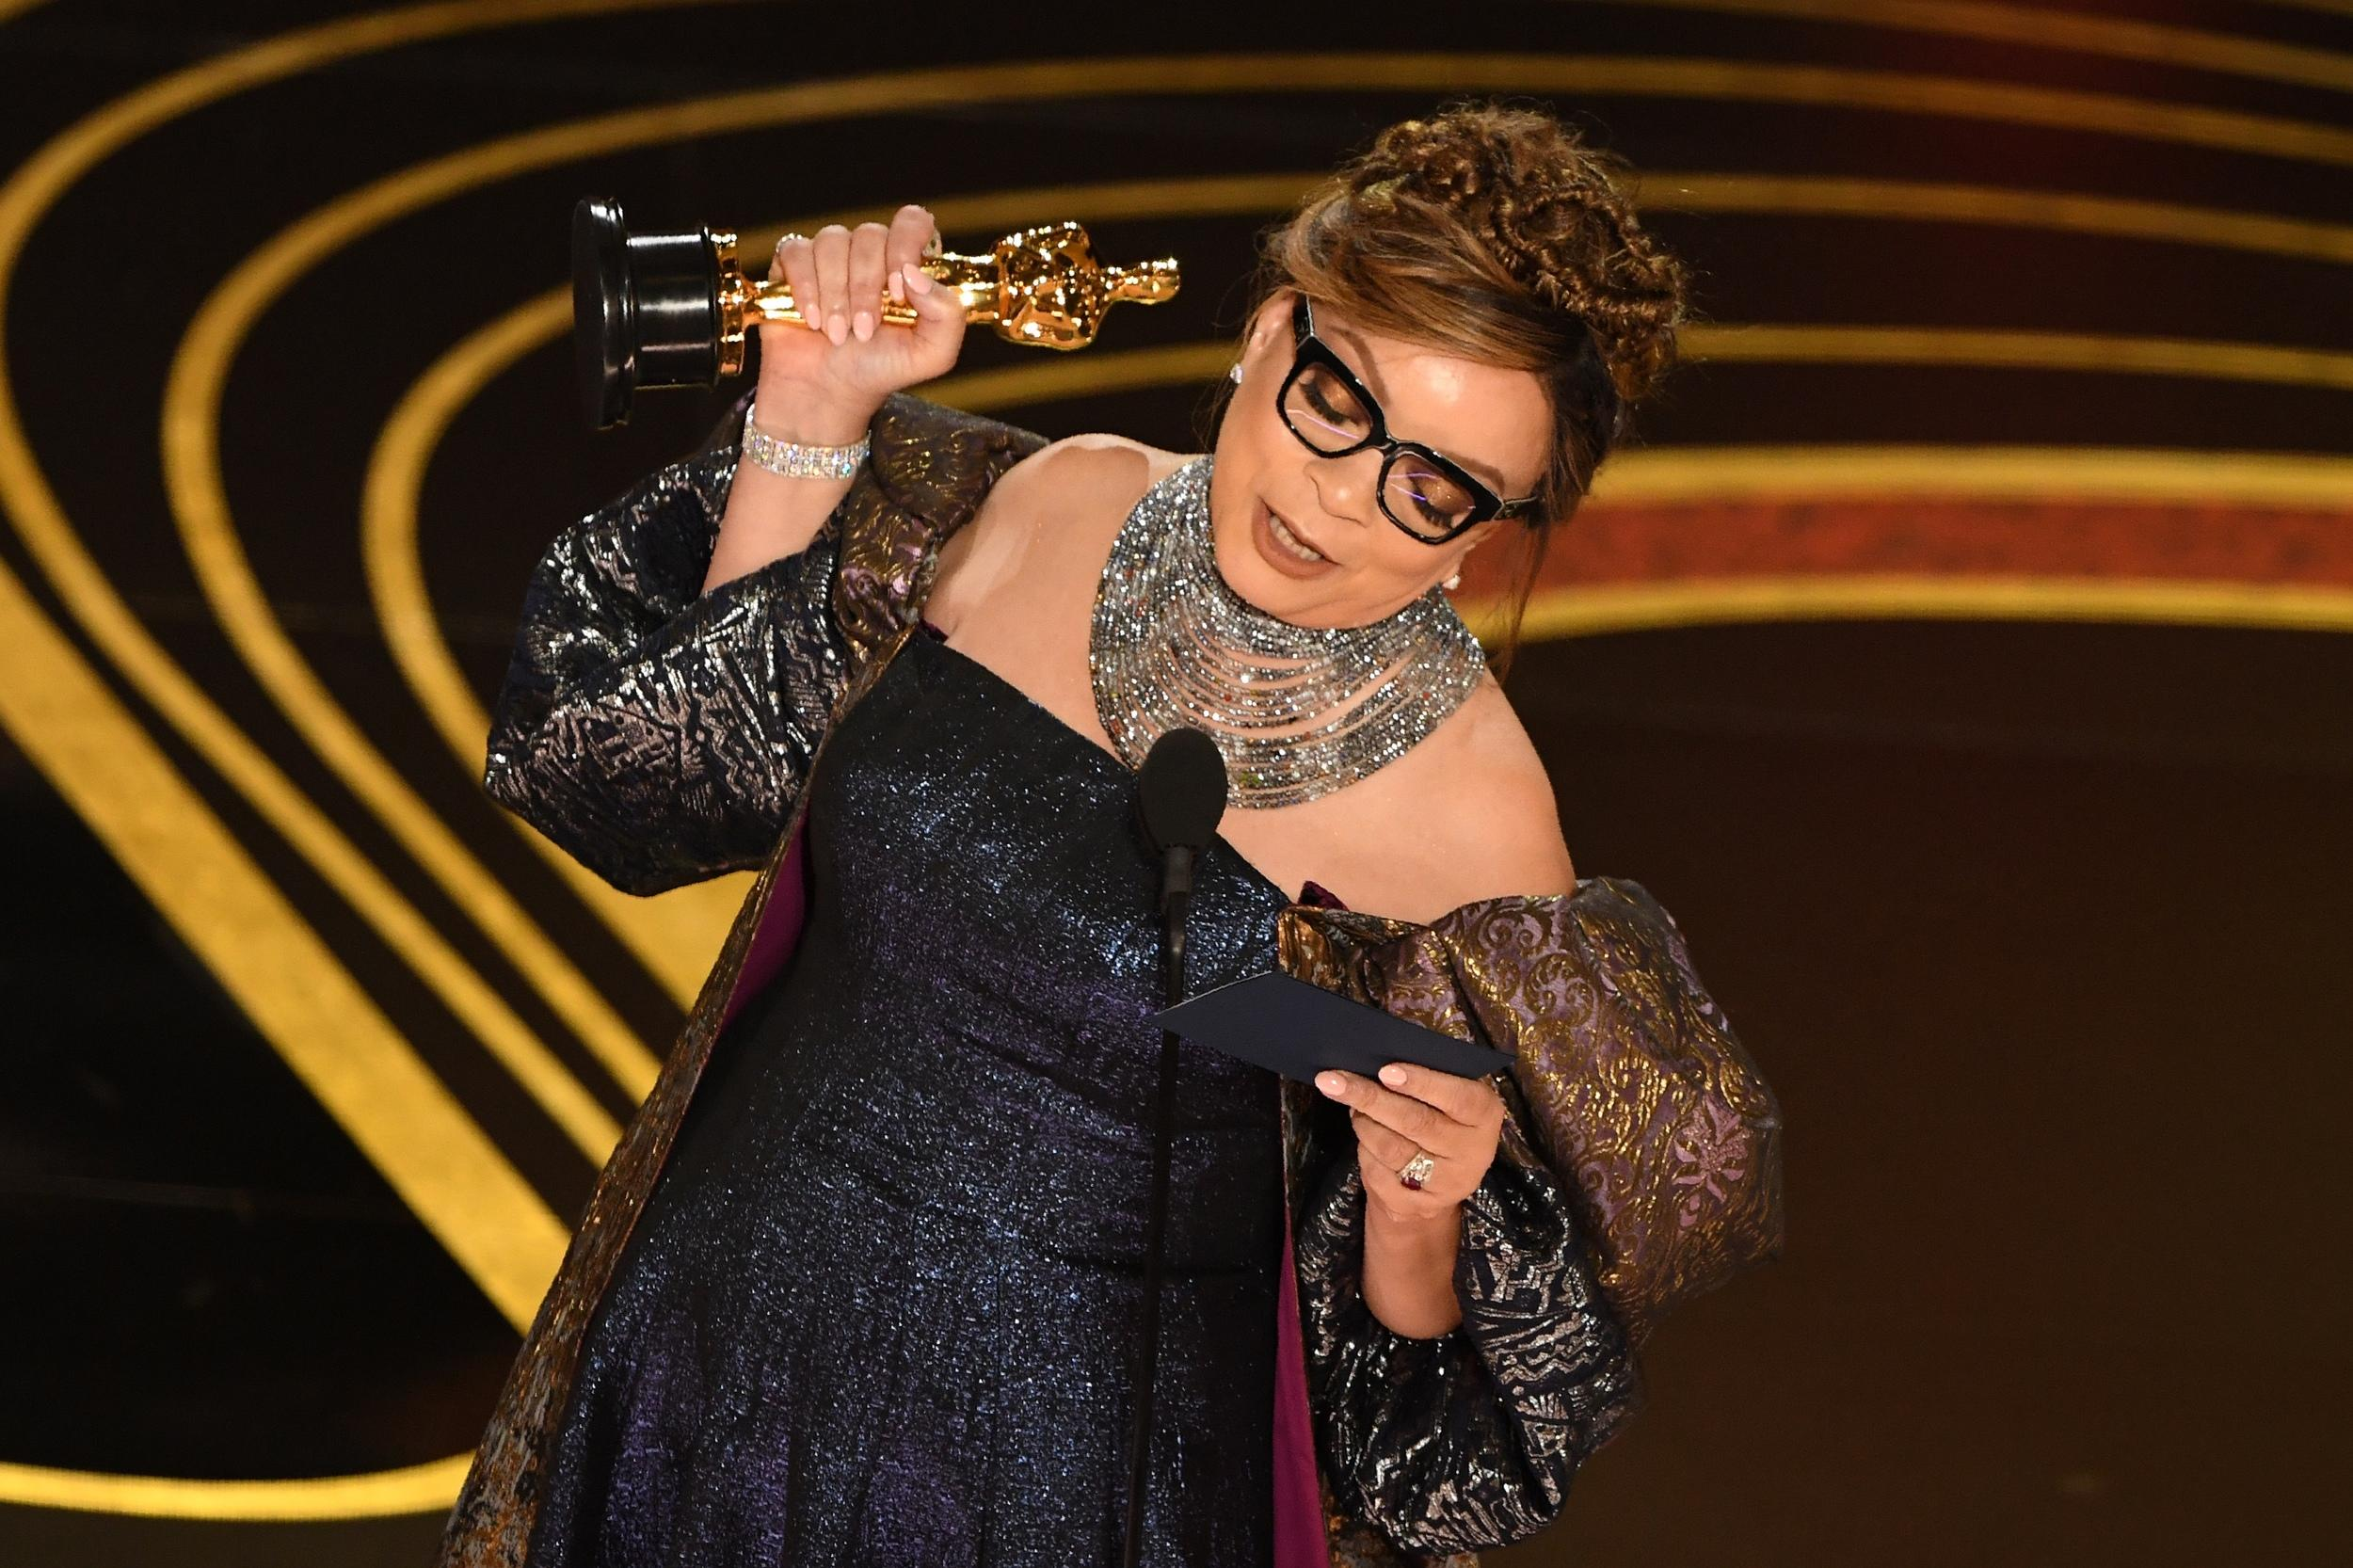 Best Costume Design nominee for 'Black Panther' Ruth E. Carter accepts her Oscar during the 91st Annual Academy Awards at the Dolby Theatre in Hollywood, California on February 24, 2019. (Photo by VALERIE MACON / AFP)        (Photo credit should read VALERIE MACON/AFP/Getty Images)